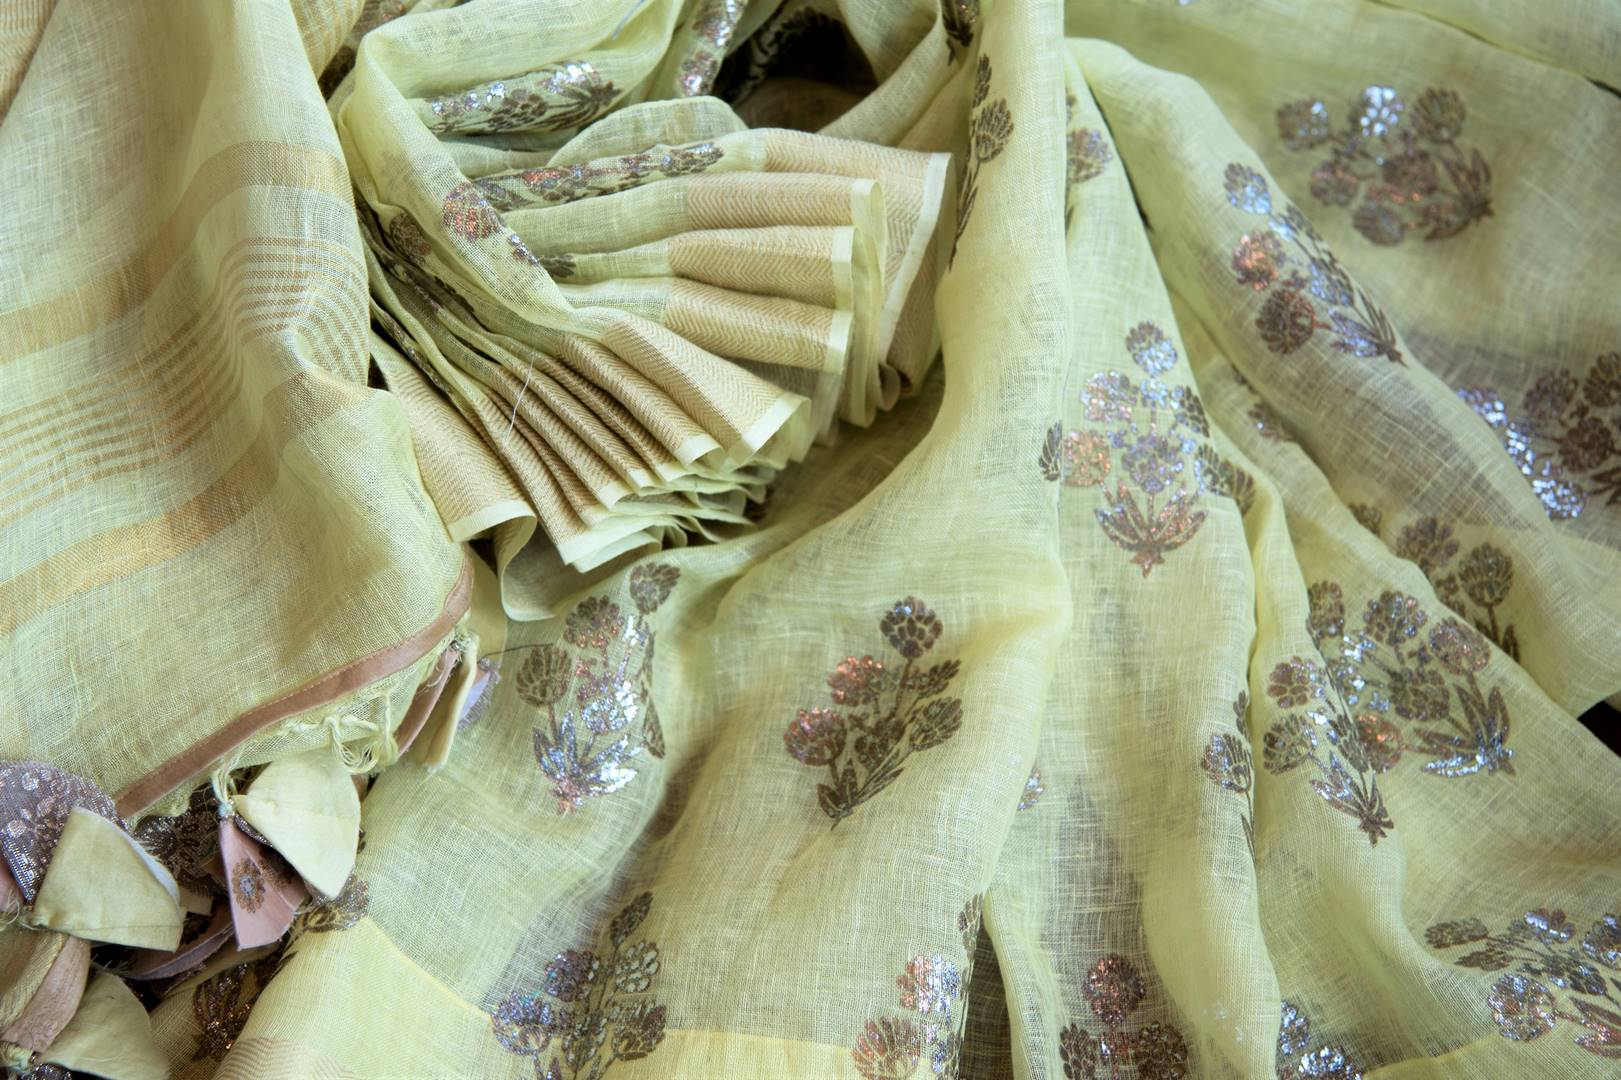 Buy yellow linen saree online in USA with zari border and beige saree blouse. Make your ethnic style even more stylish with an exclusive range on Indian handloom sarees from Pure Elegance Indian fashion store in USA. -details